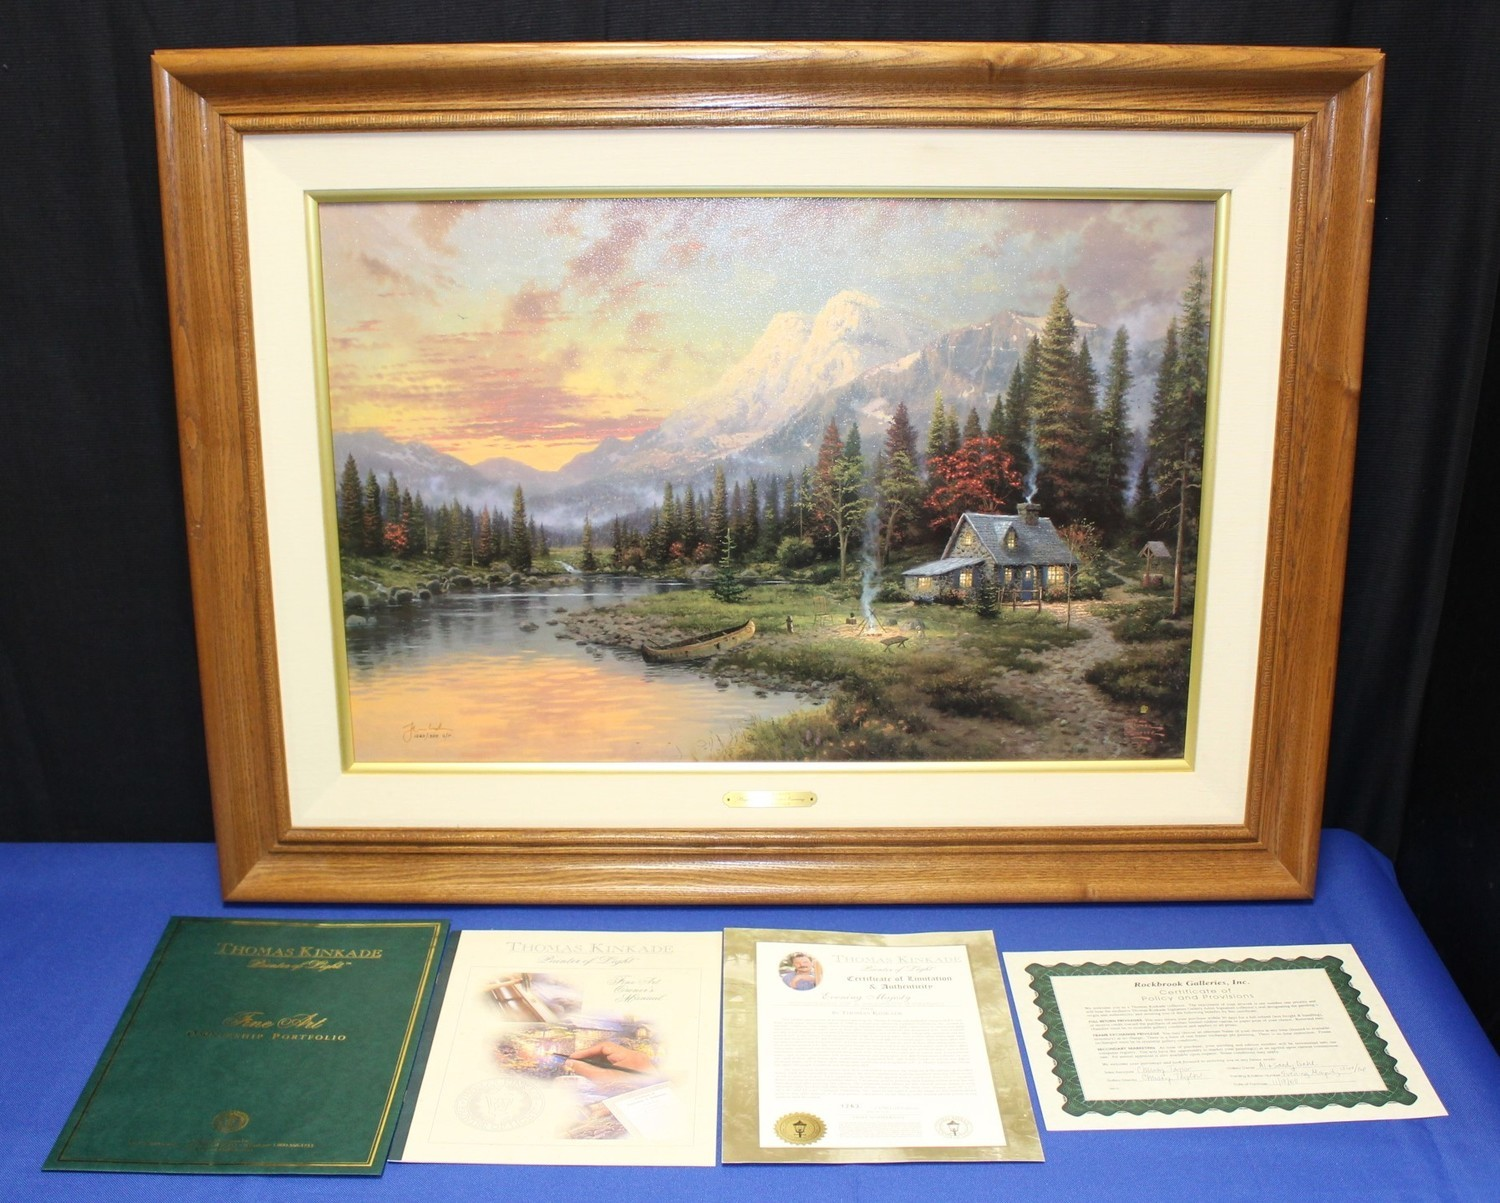 Thomas Kinkade Evening Majesty Framed Lithograph on Canvas G/P 1263/1750, COA